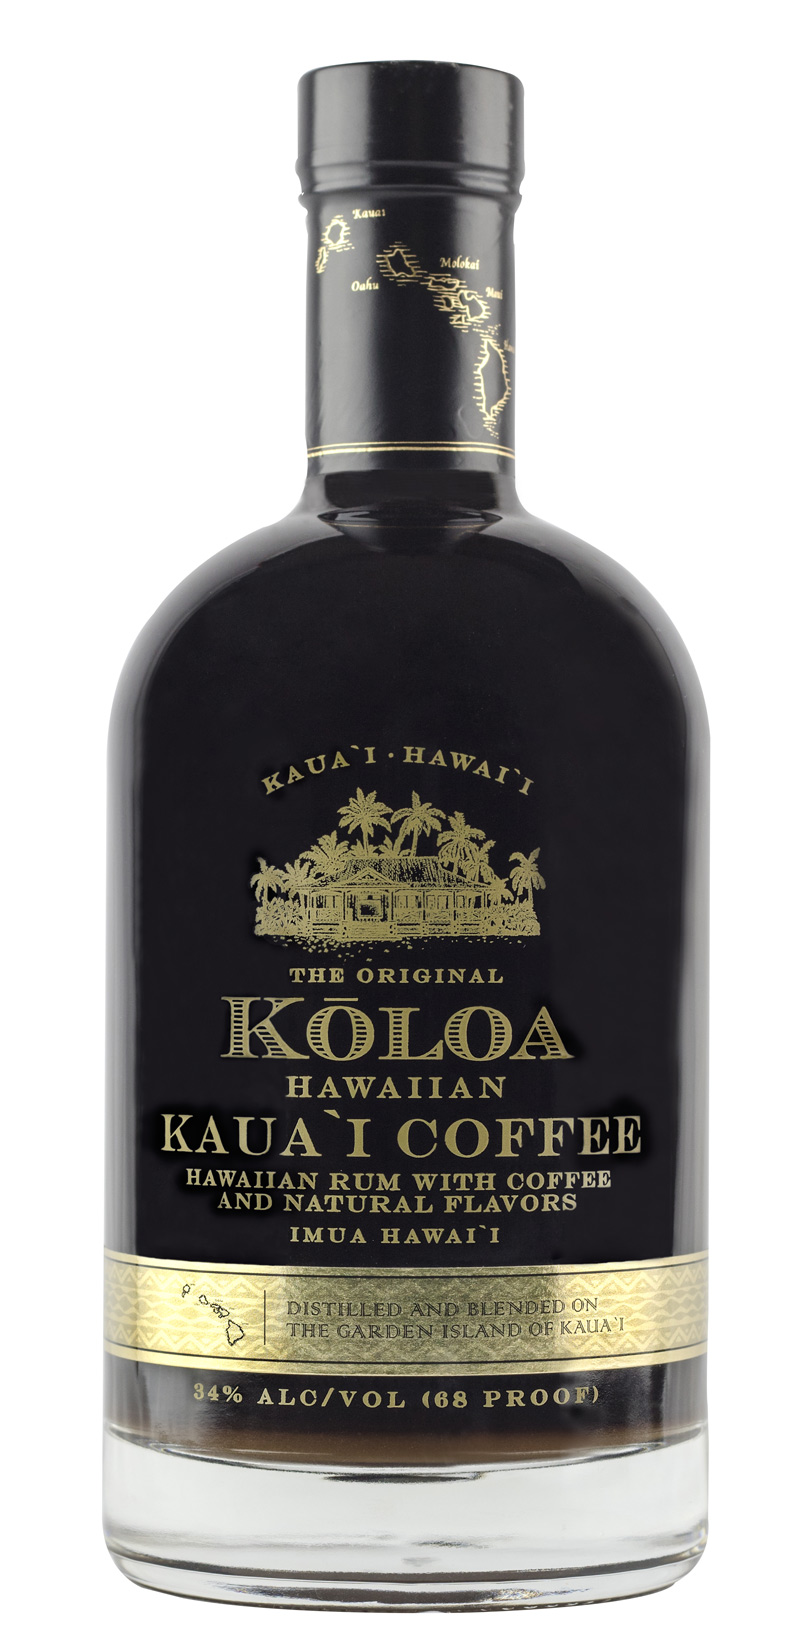 Koloa Kaua'i Coffee Rum - Another delightful rum expression from Hawaii announced: Koloa's Kaua`i Coffee Rum brilliantly integrates Kauai-grown coffee with artisanal rum.